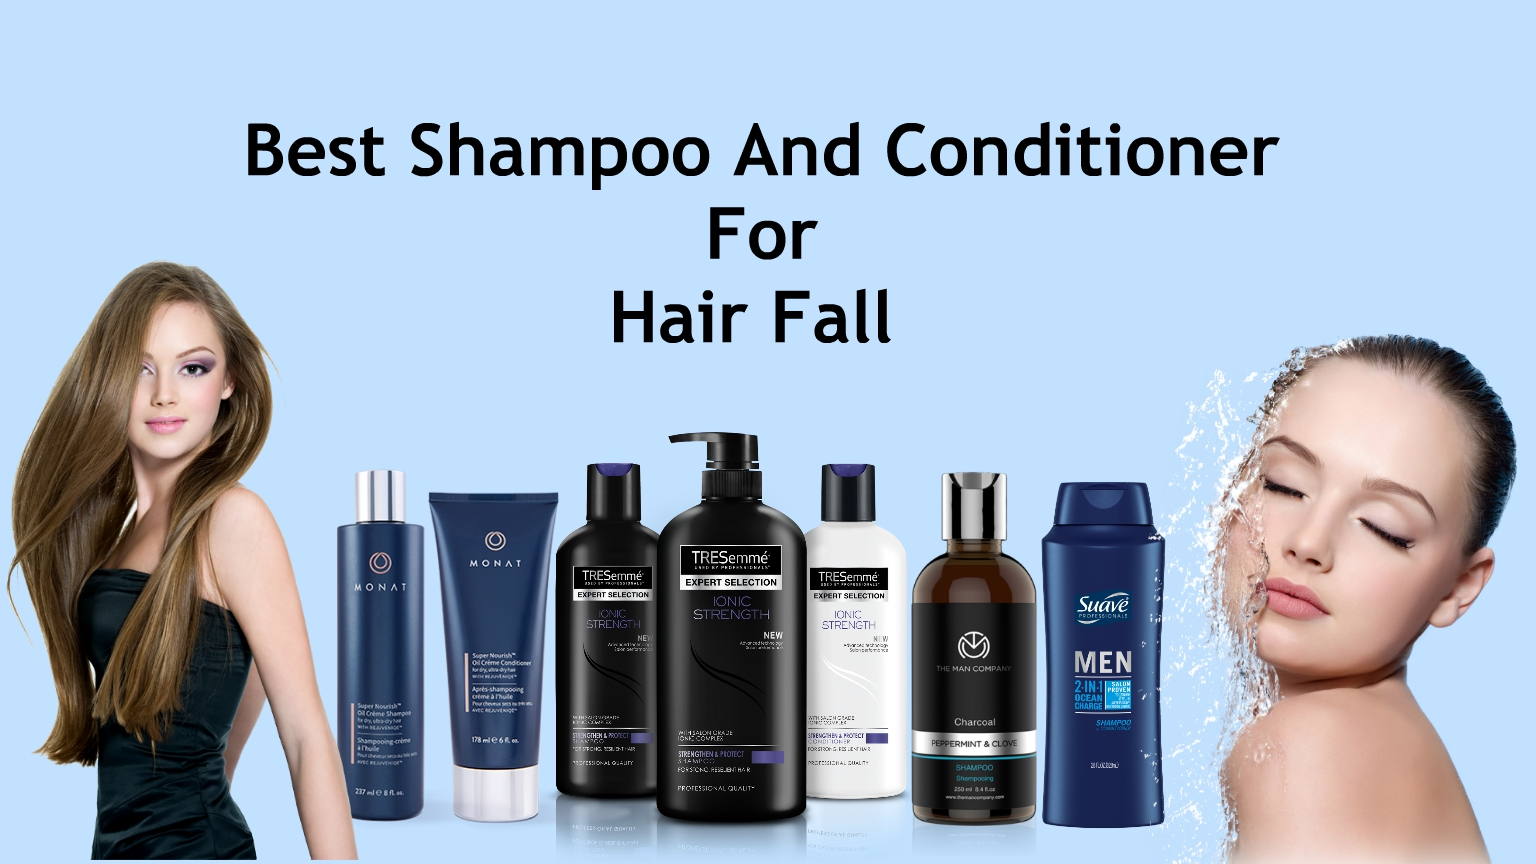 Best Shampoo And Conditioner For Hair Fall